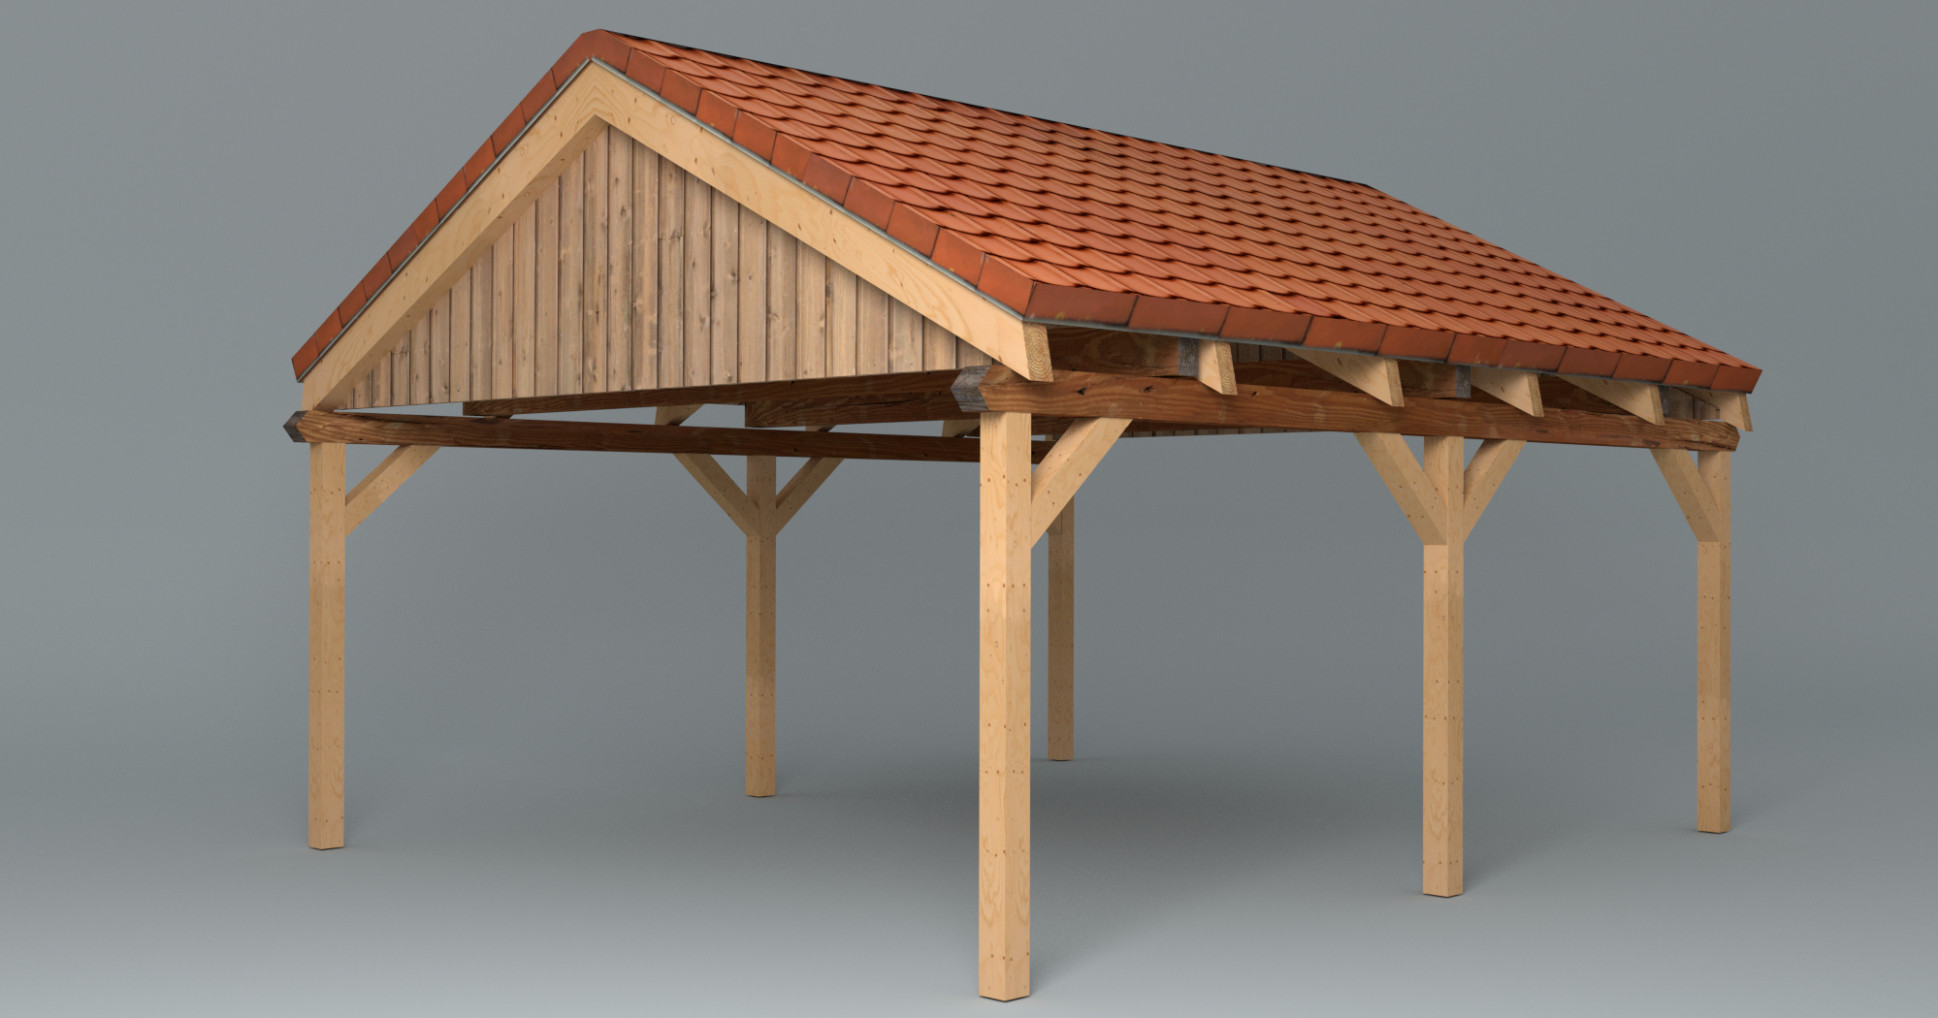 Wooden Carport With Saddle Roof (Lowpoly) Wooden Carport Installation